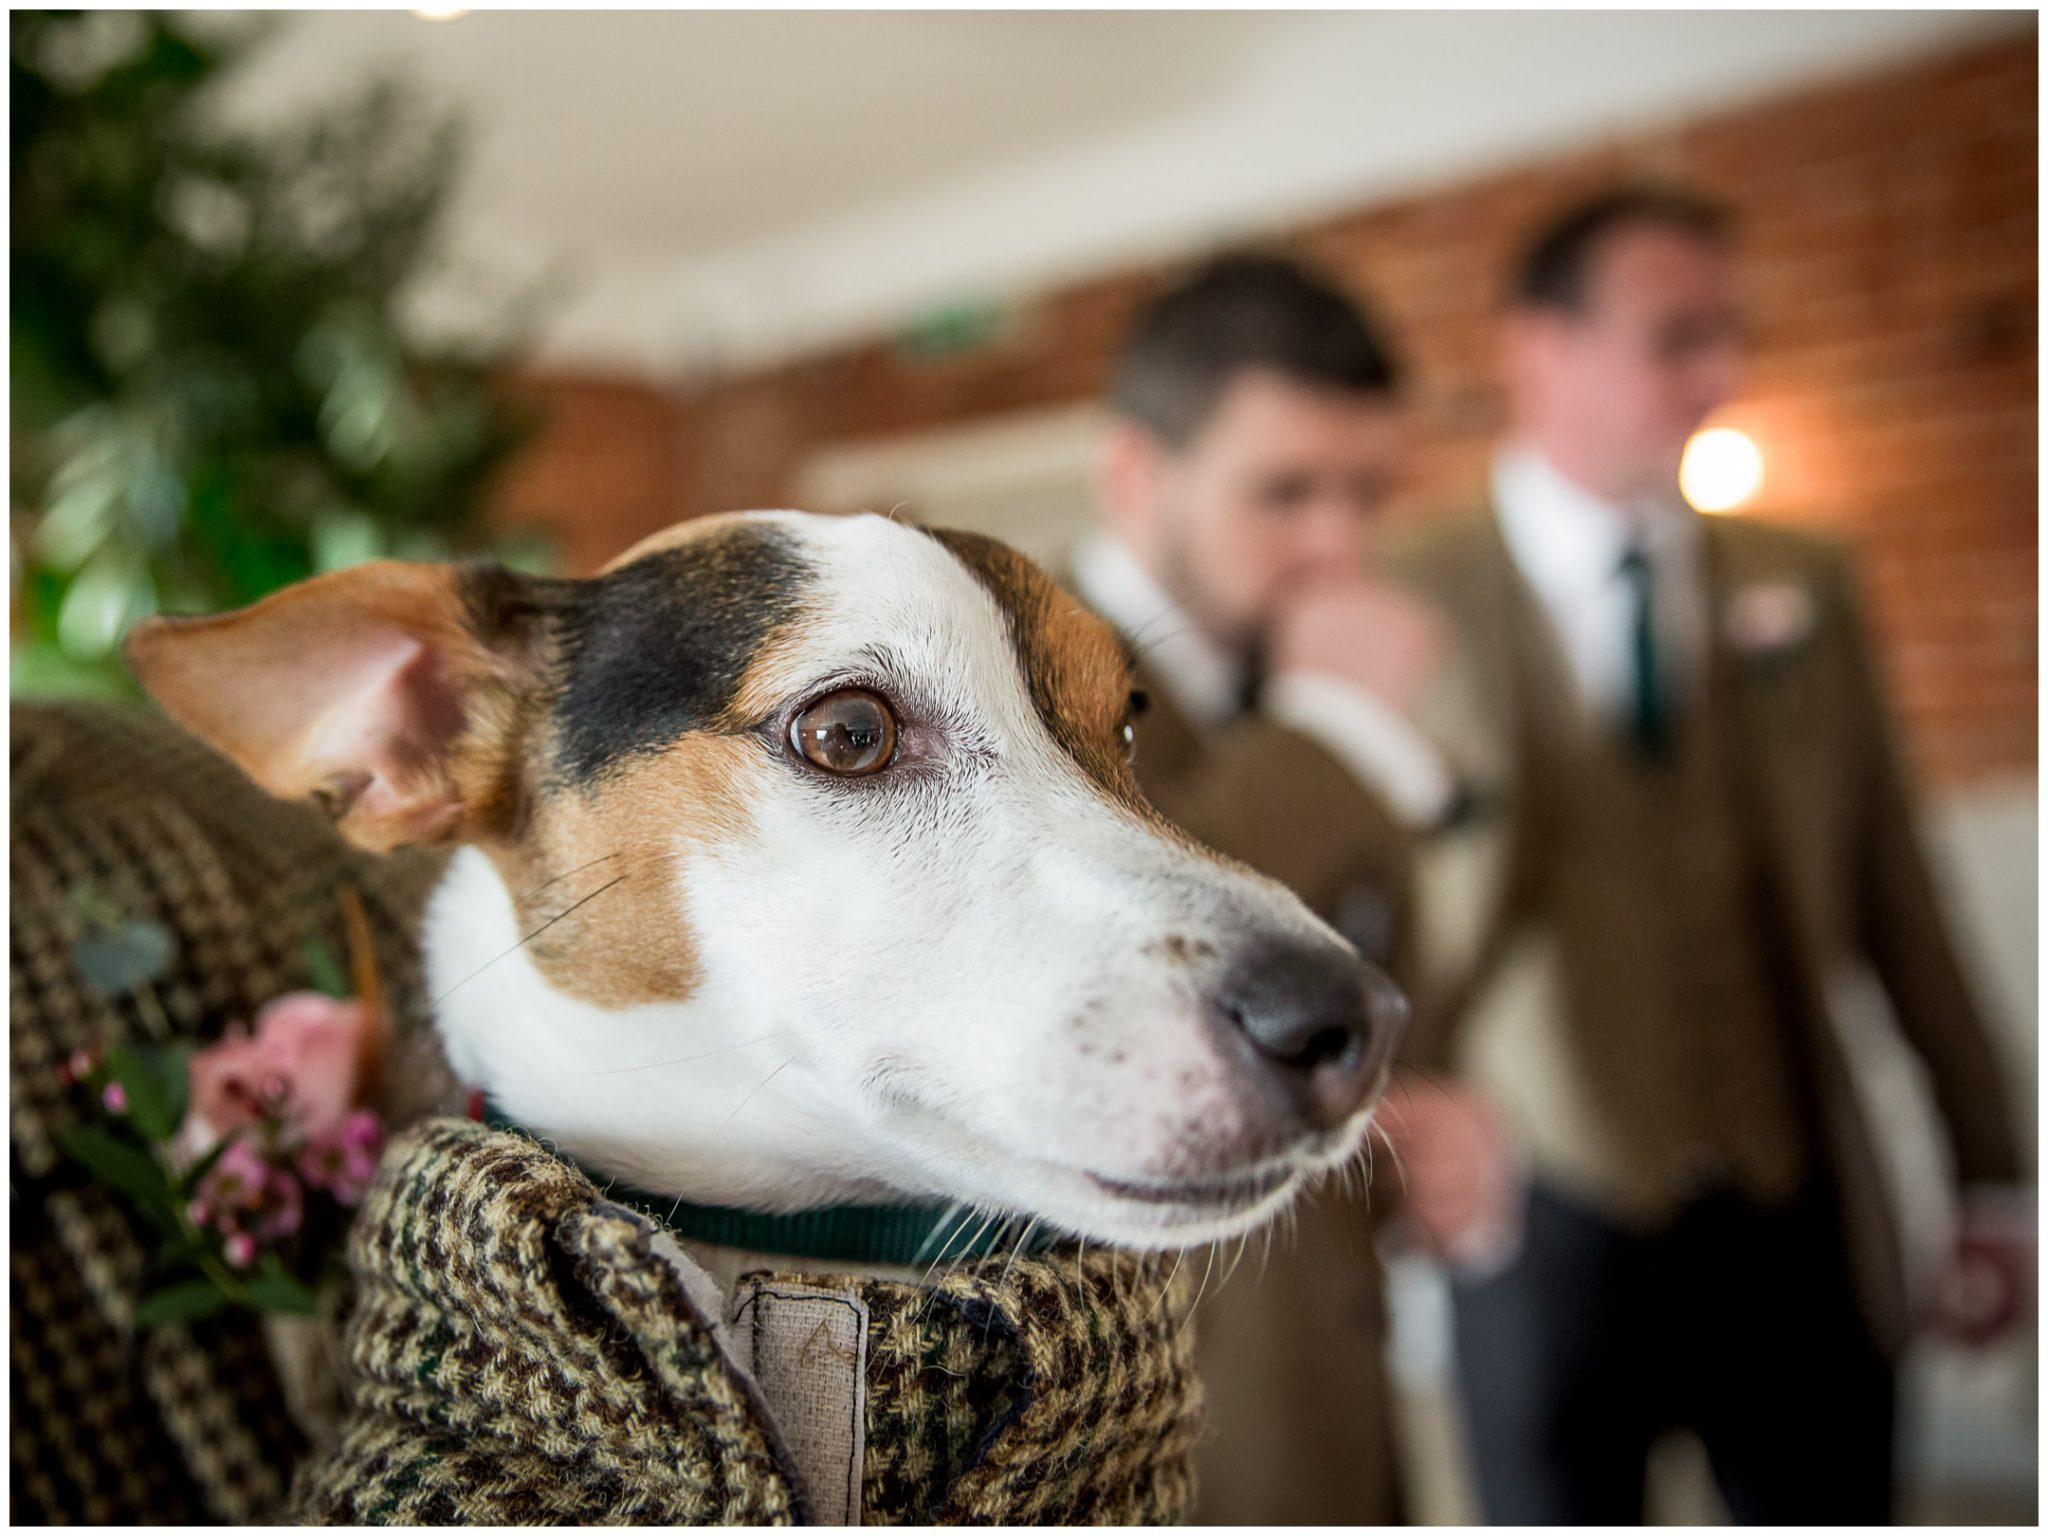 The couple's dog waiting for the bride's arrival